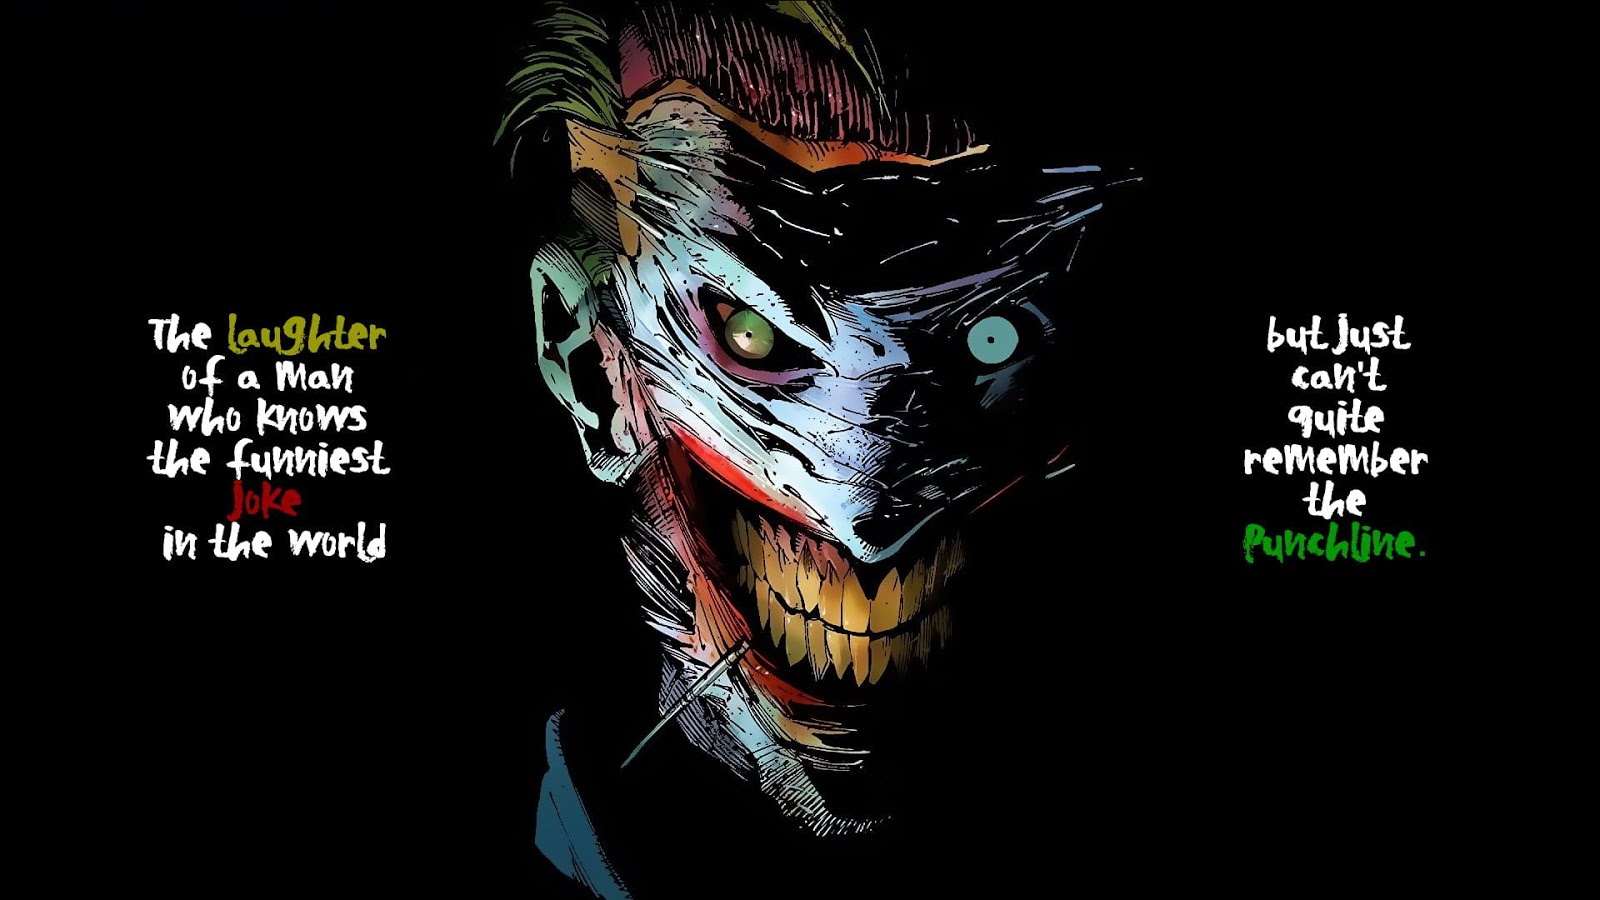 joker-and-harley-cartoon-wallpaper